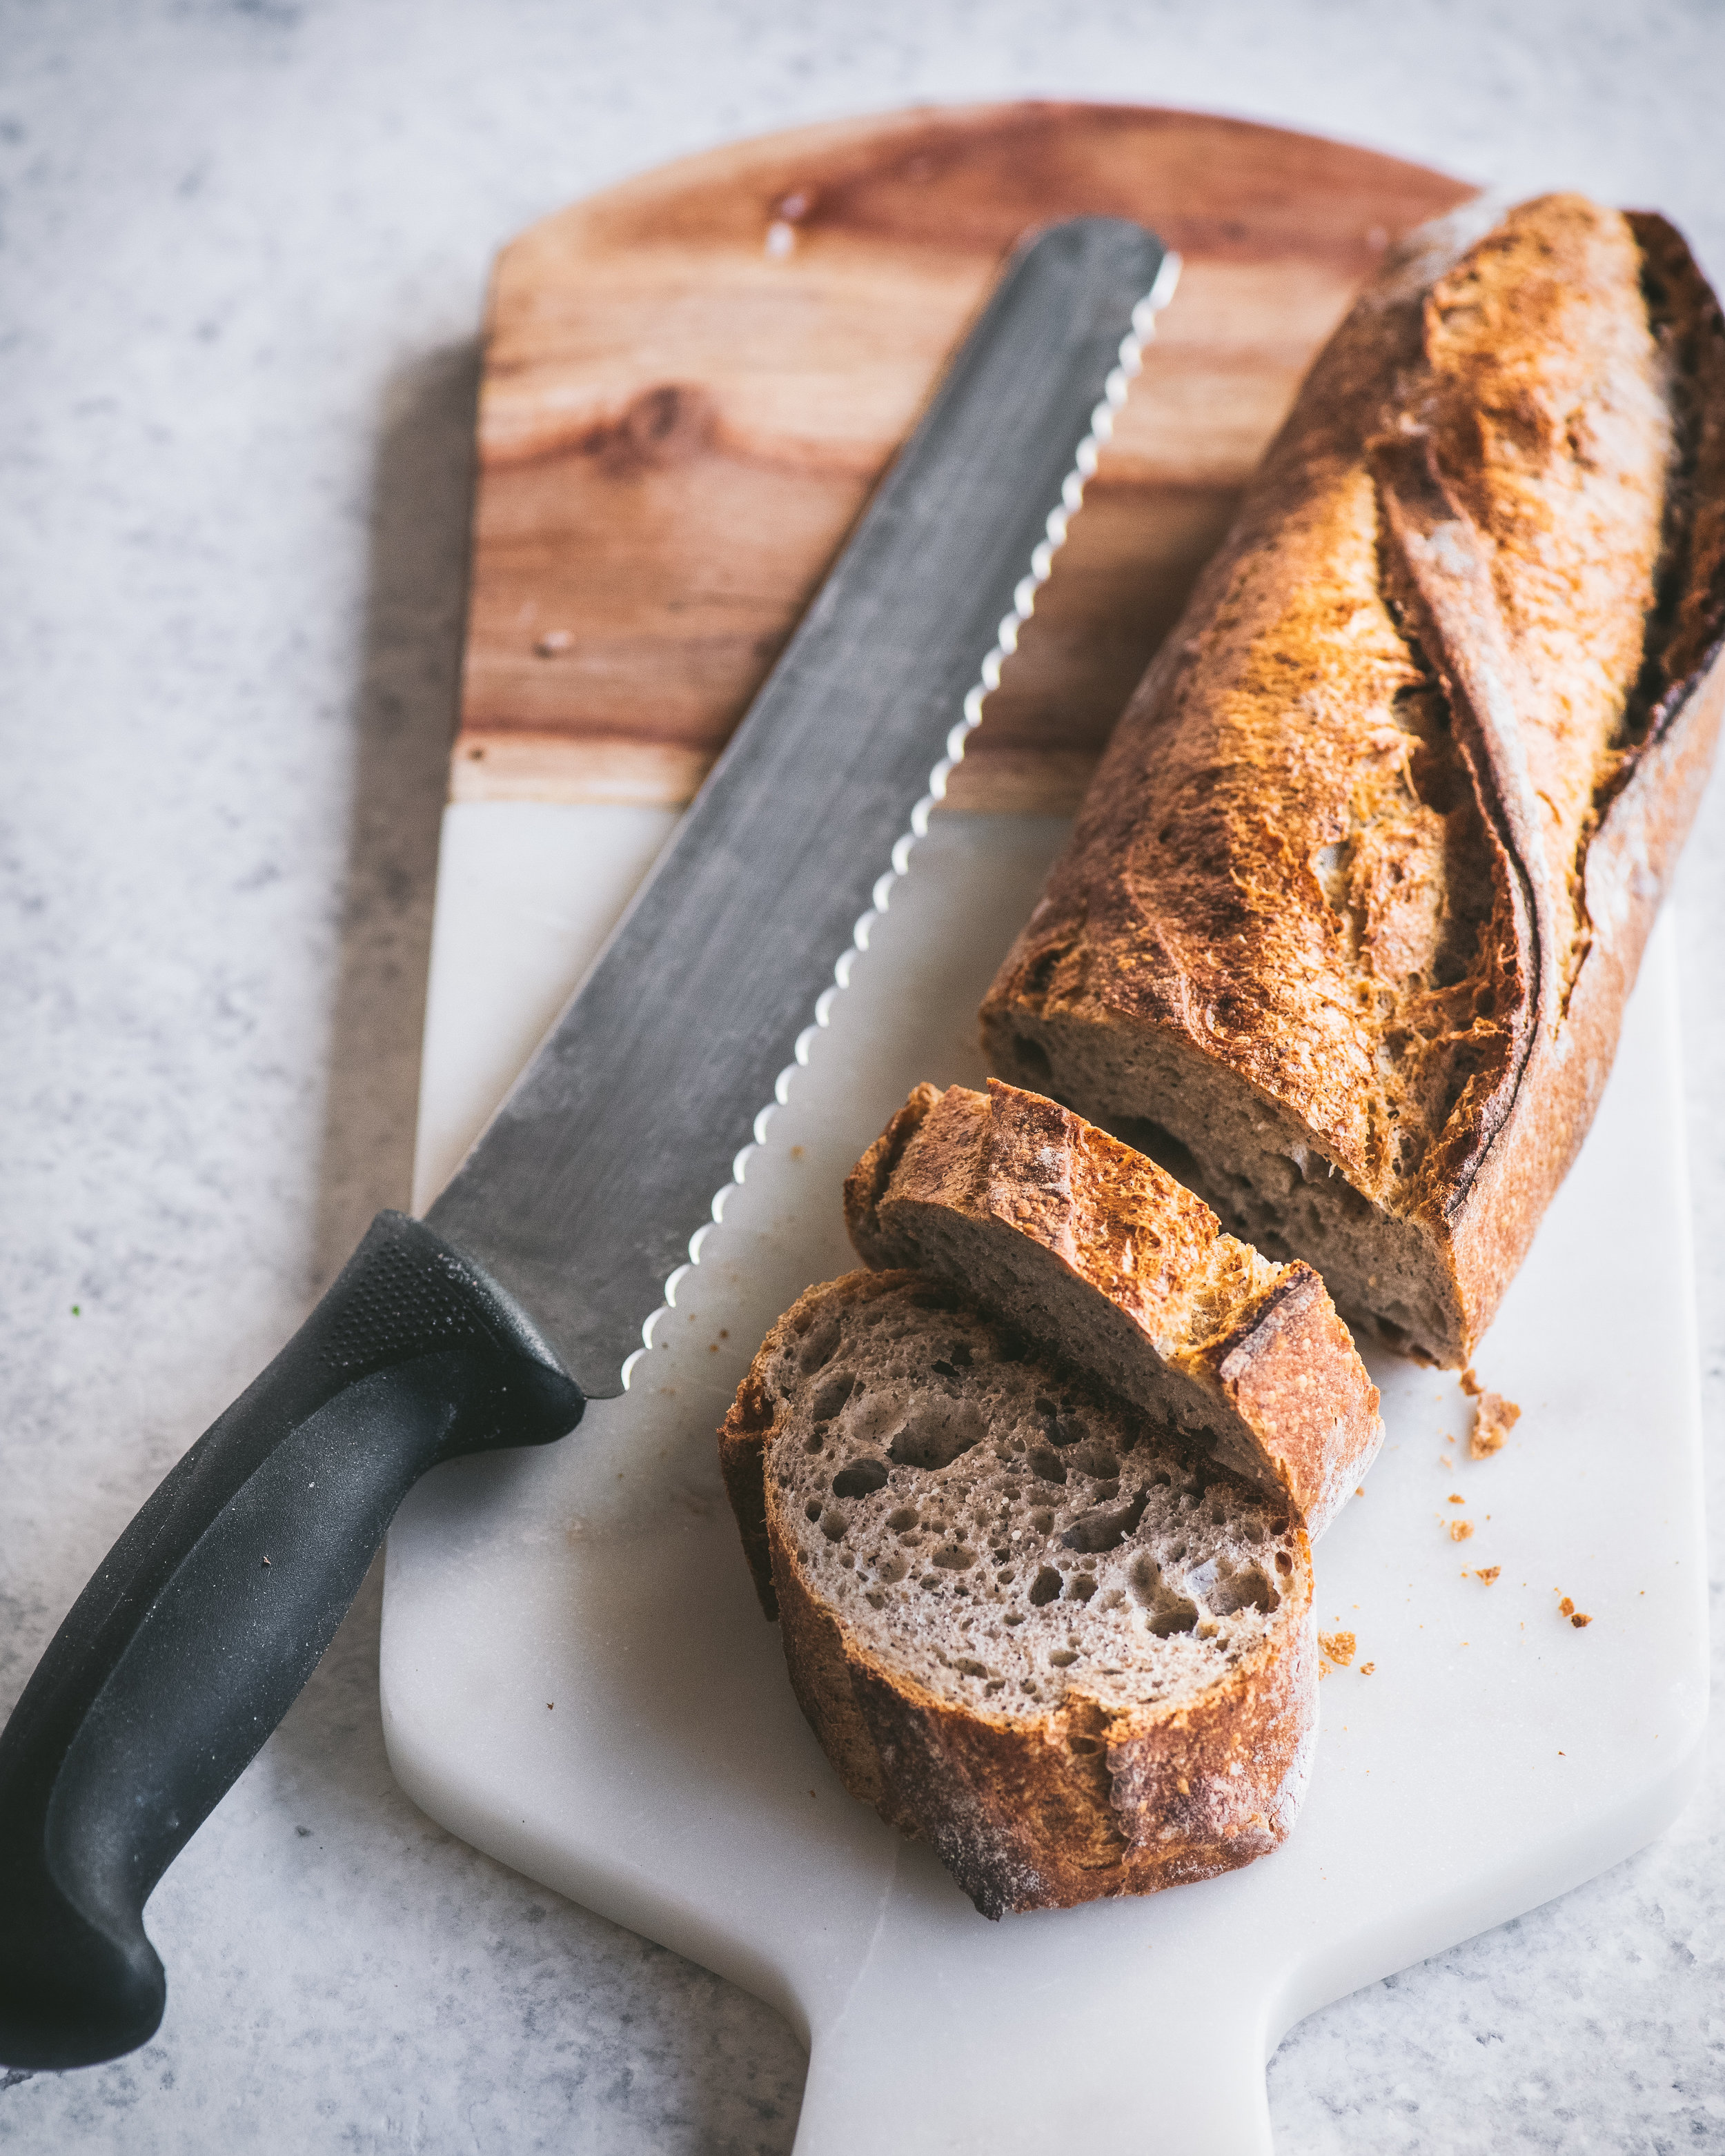 10-inch Bread Knife - An inexpensive bread knife that actually works! This is my go-to knife for cutting bread (including stale bread for French Toast), slicing tomatoes, and peeling hard fruits.Price: $13.39 on Amazon